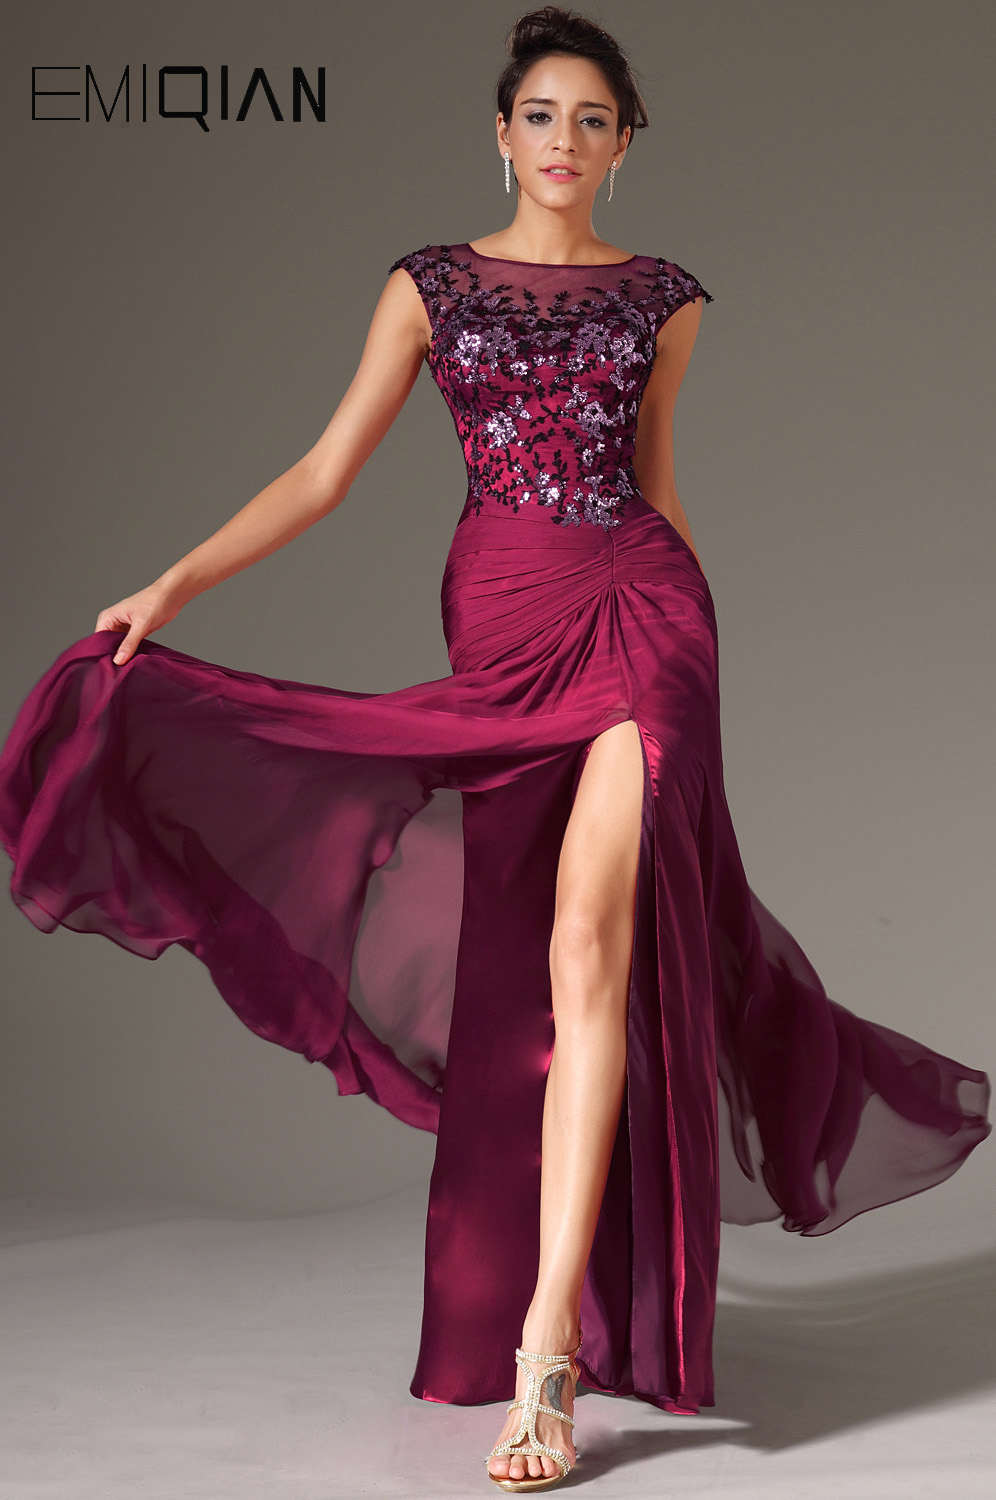 Appliqued Formal Party Gown O Neck Cap Sleeves Front Slit Burgundy Chiffon Evening Dresses